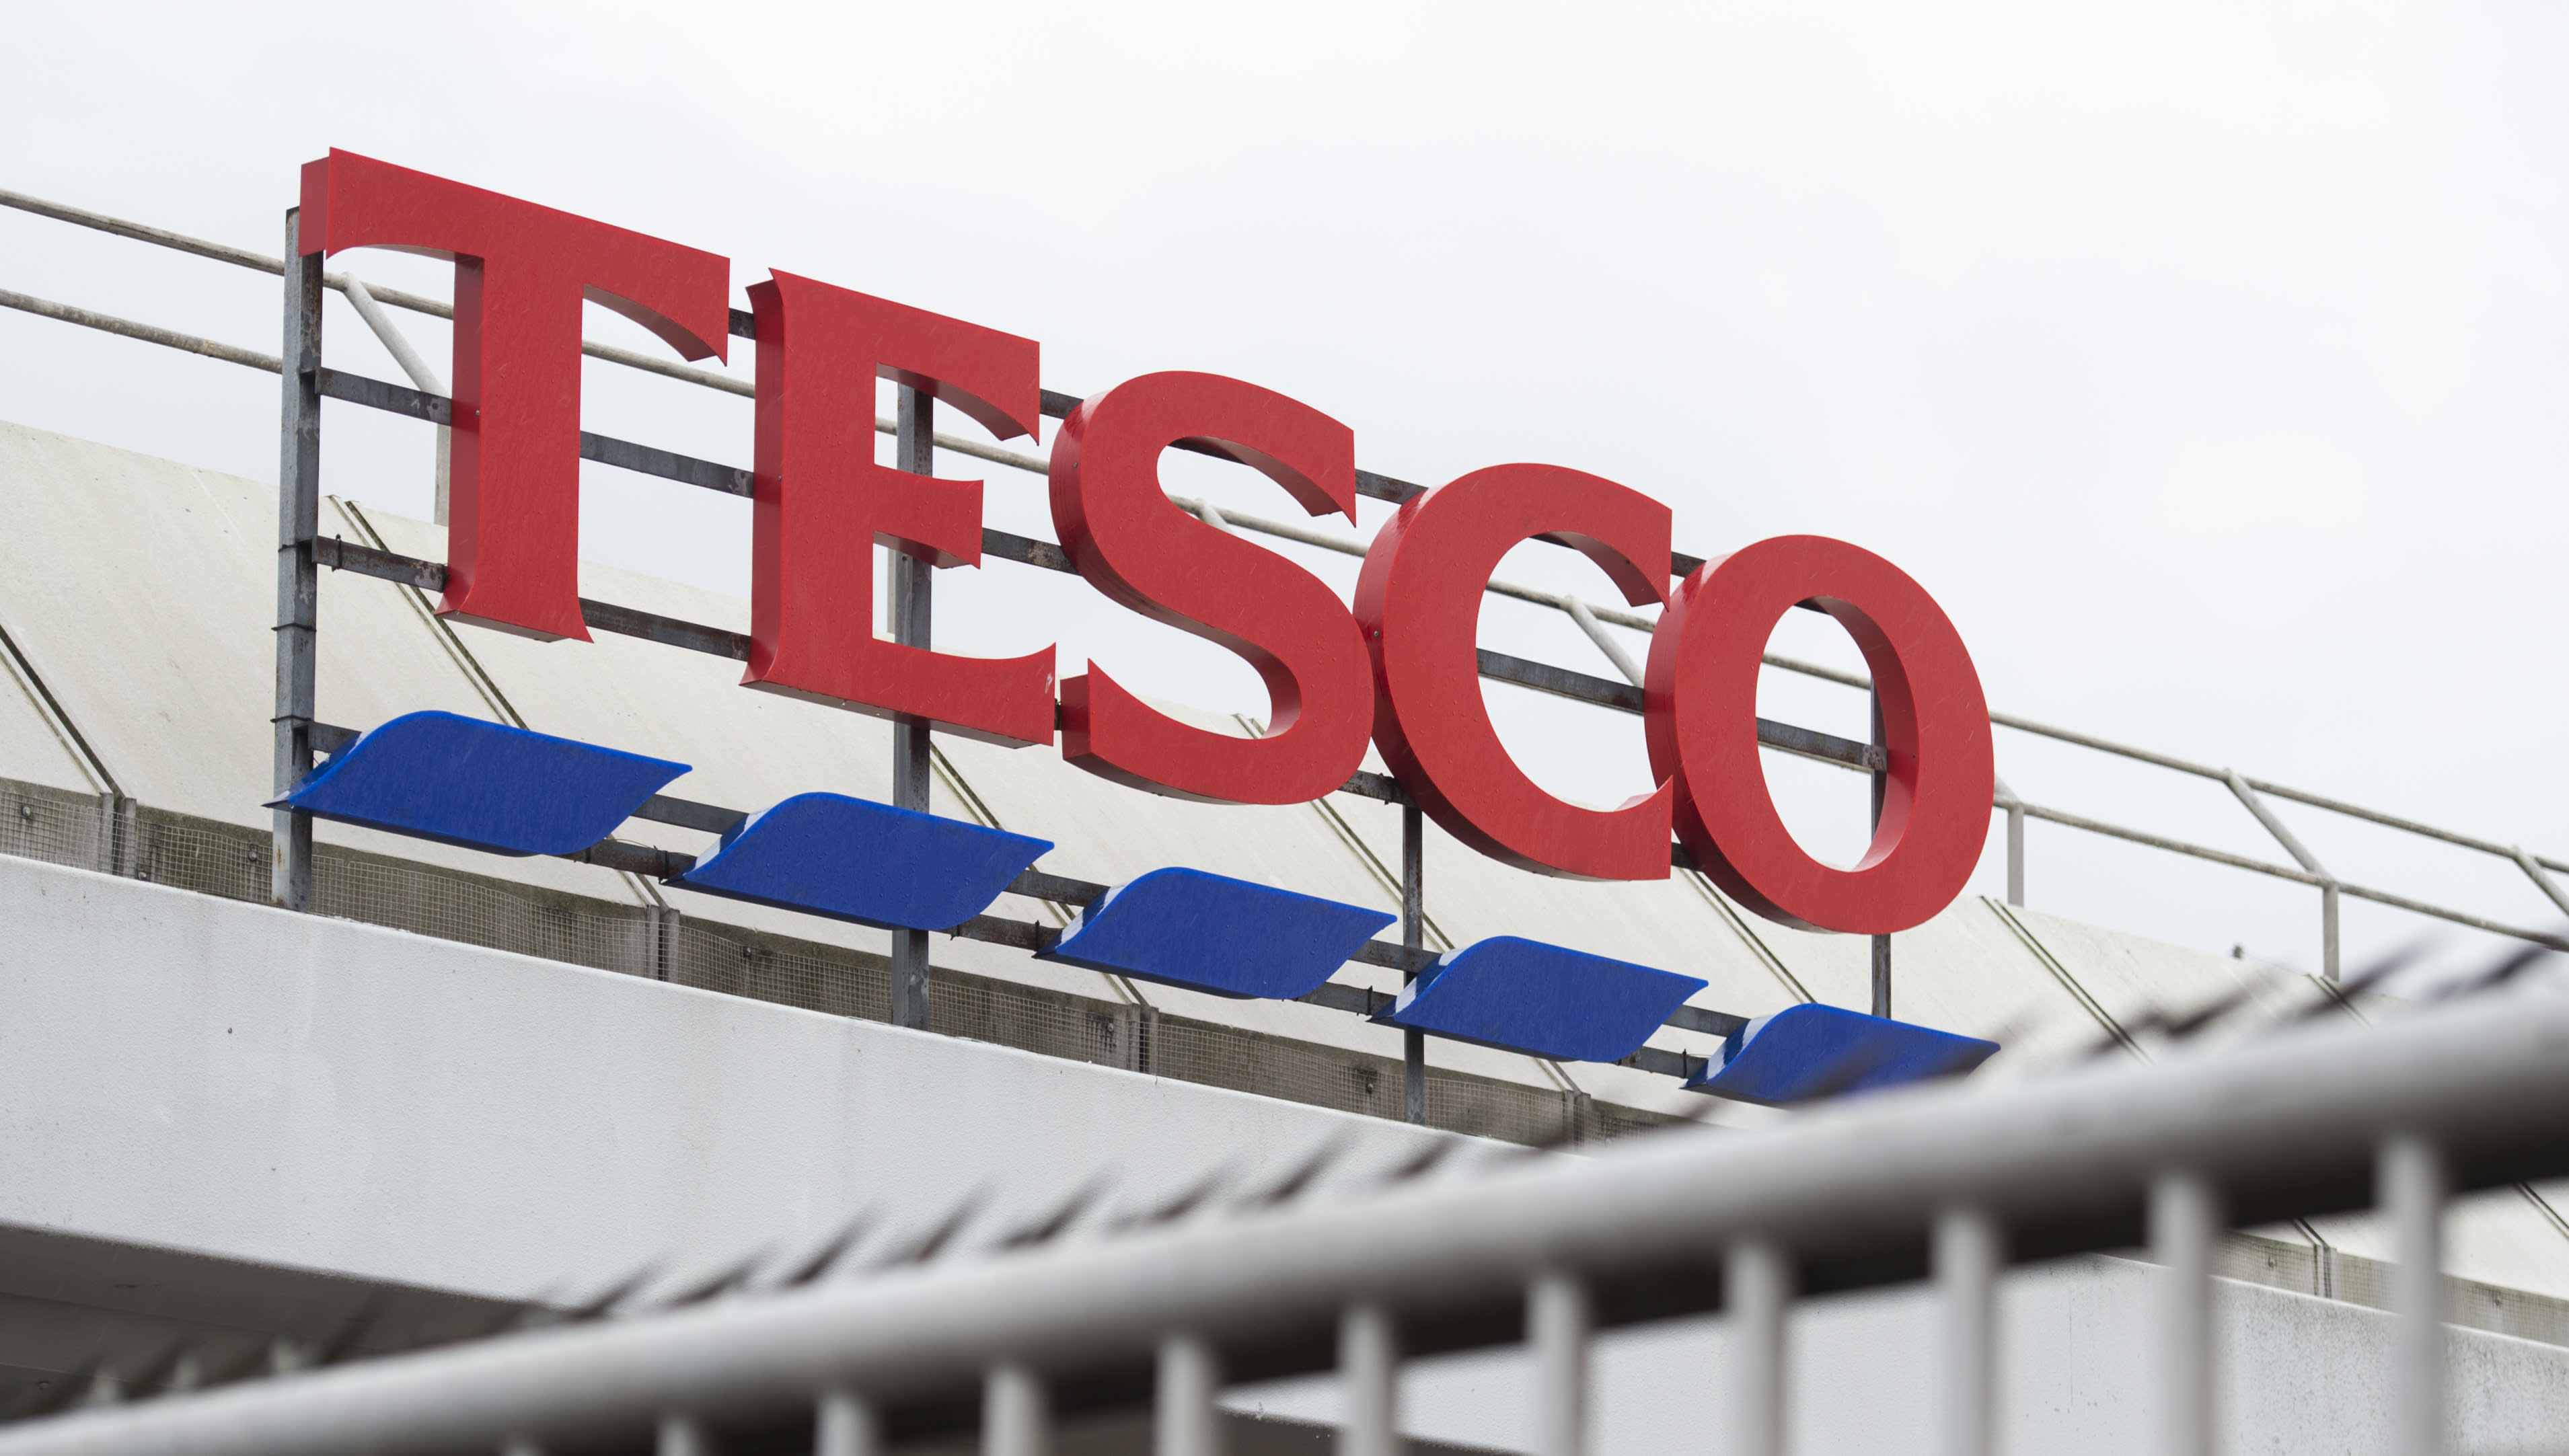 Tesco refuses to commit to MPs' demands on mortgage sale